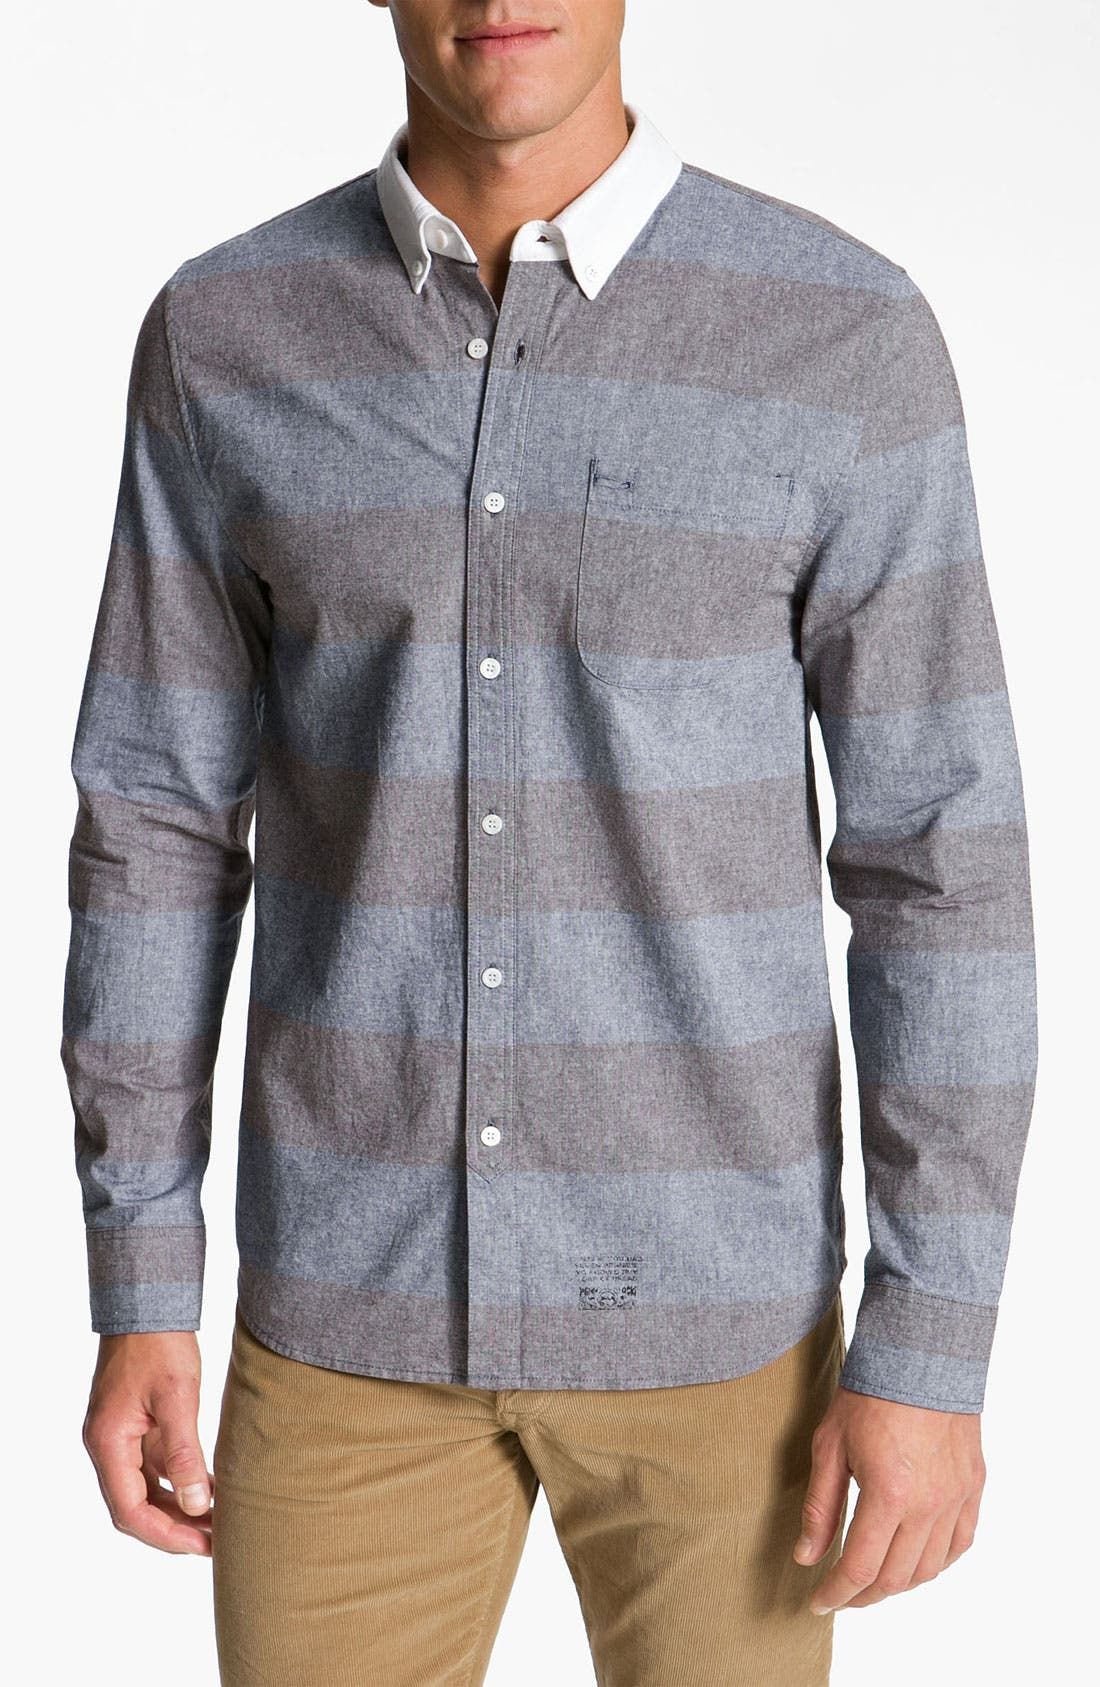 Alternate Image 1 Selected - Penny Stock 'Penny Oxford' Shirt